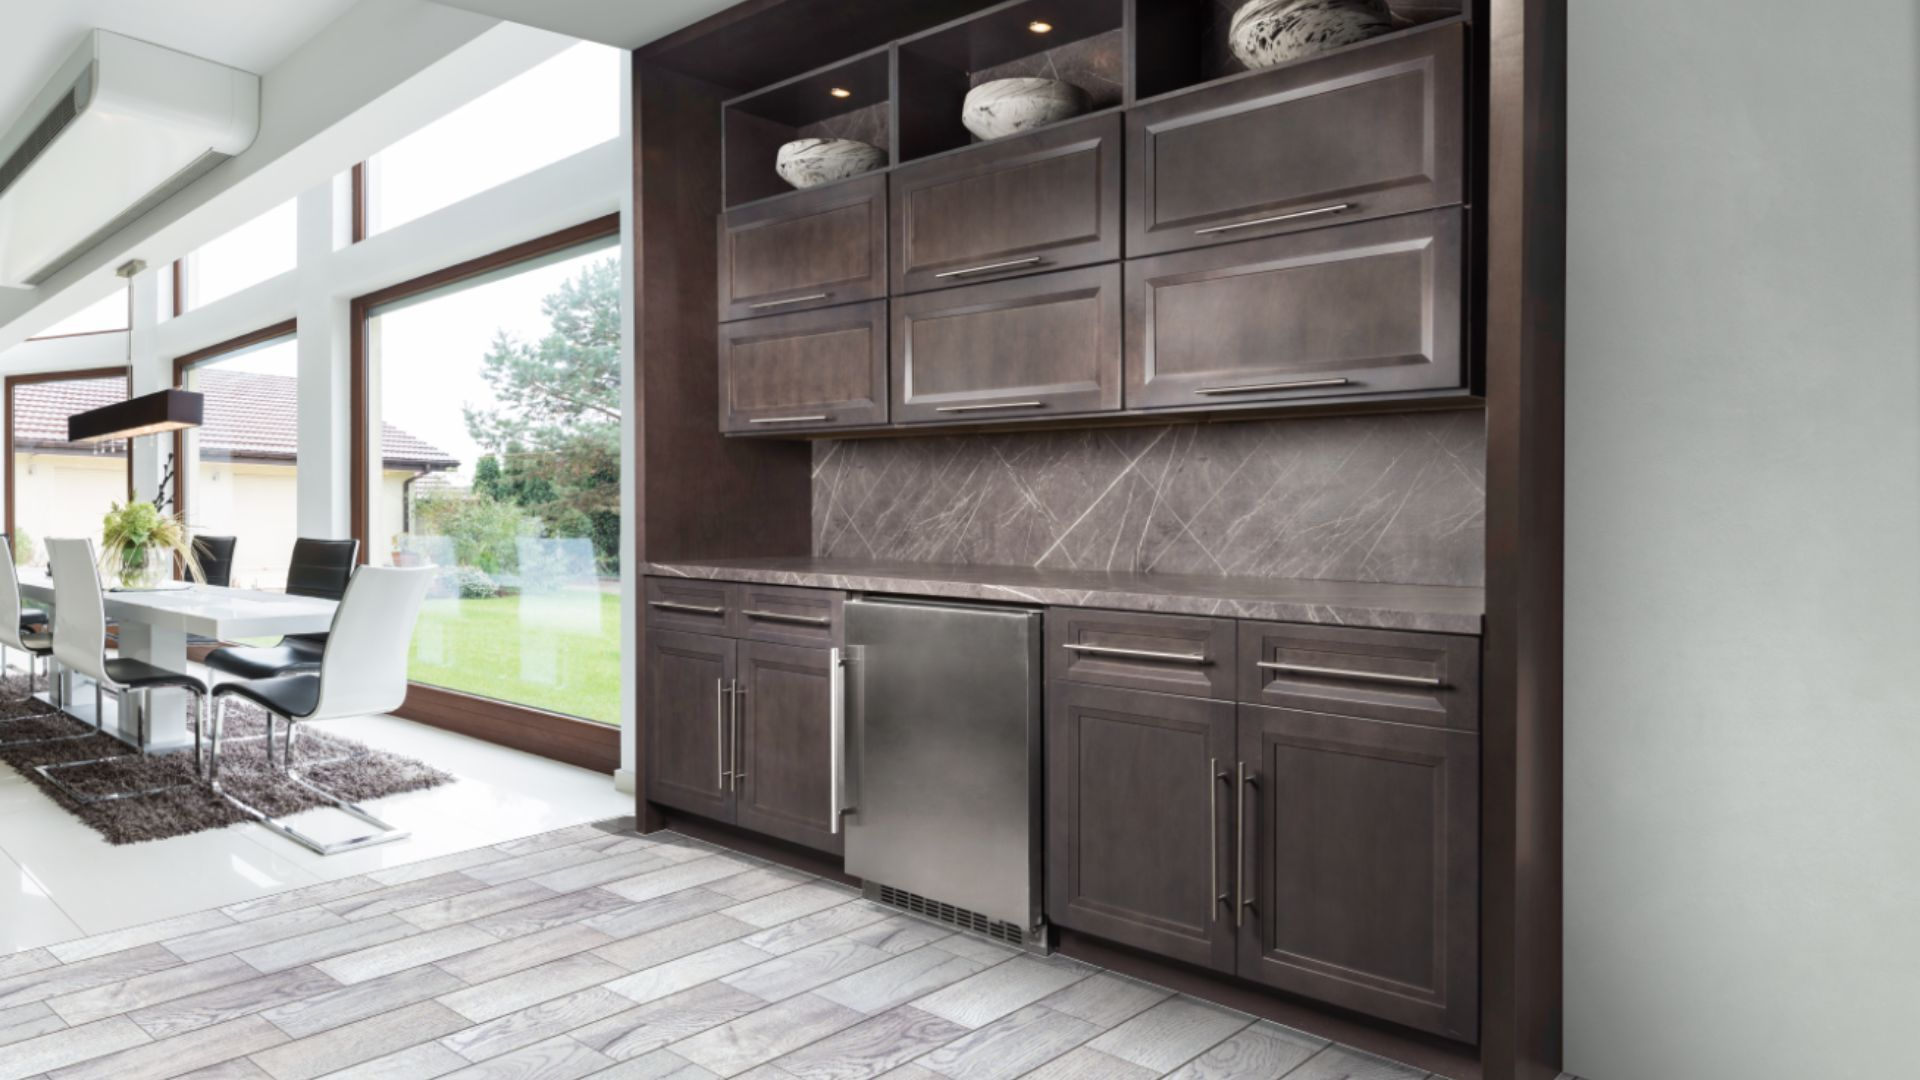 Fabuwood Allure Onyx Cobblestone Kitchen Cabinets From Aaa Distributor The Onyx Is Sure T In 2020 Cabinets And Countertops Kitchen Cabinets Assembled Kitchen Cabinets